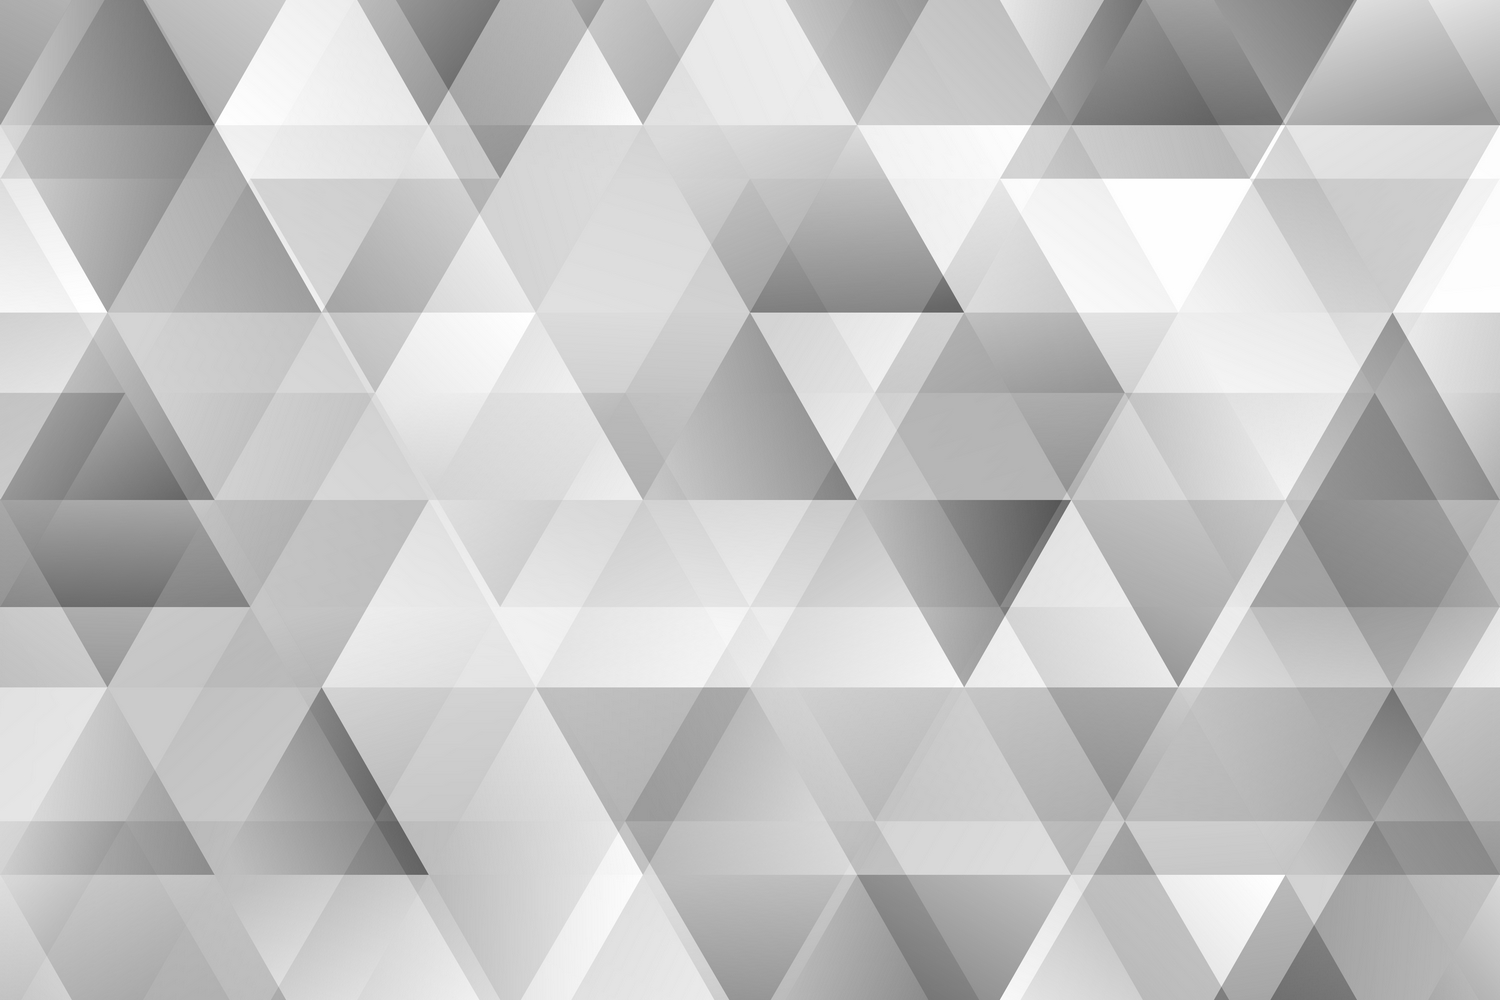 24 Gradient Polygon Backgrounds AI, EPS, JPG 5000x5000 example image 4